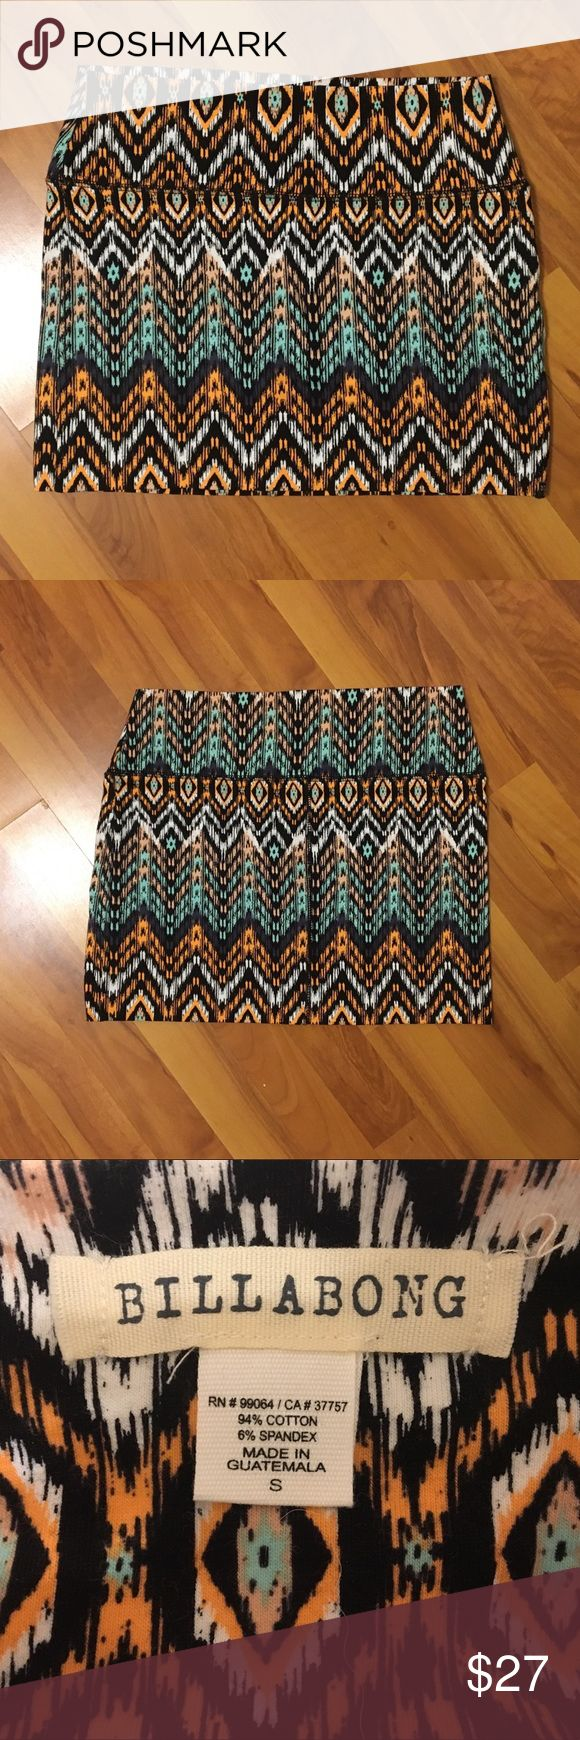 Billabong Tight Mini Skirt NEVER BEEN WORN! Does not have tags attached, but it is new. This skirt is just elastic enough to be flattering on anyone! Can be worn causally, or dressed up for a formal occasion. Please comment with any questions you might have! Billabong Skirts